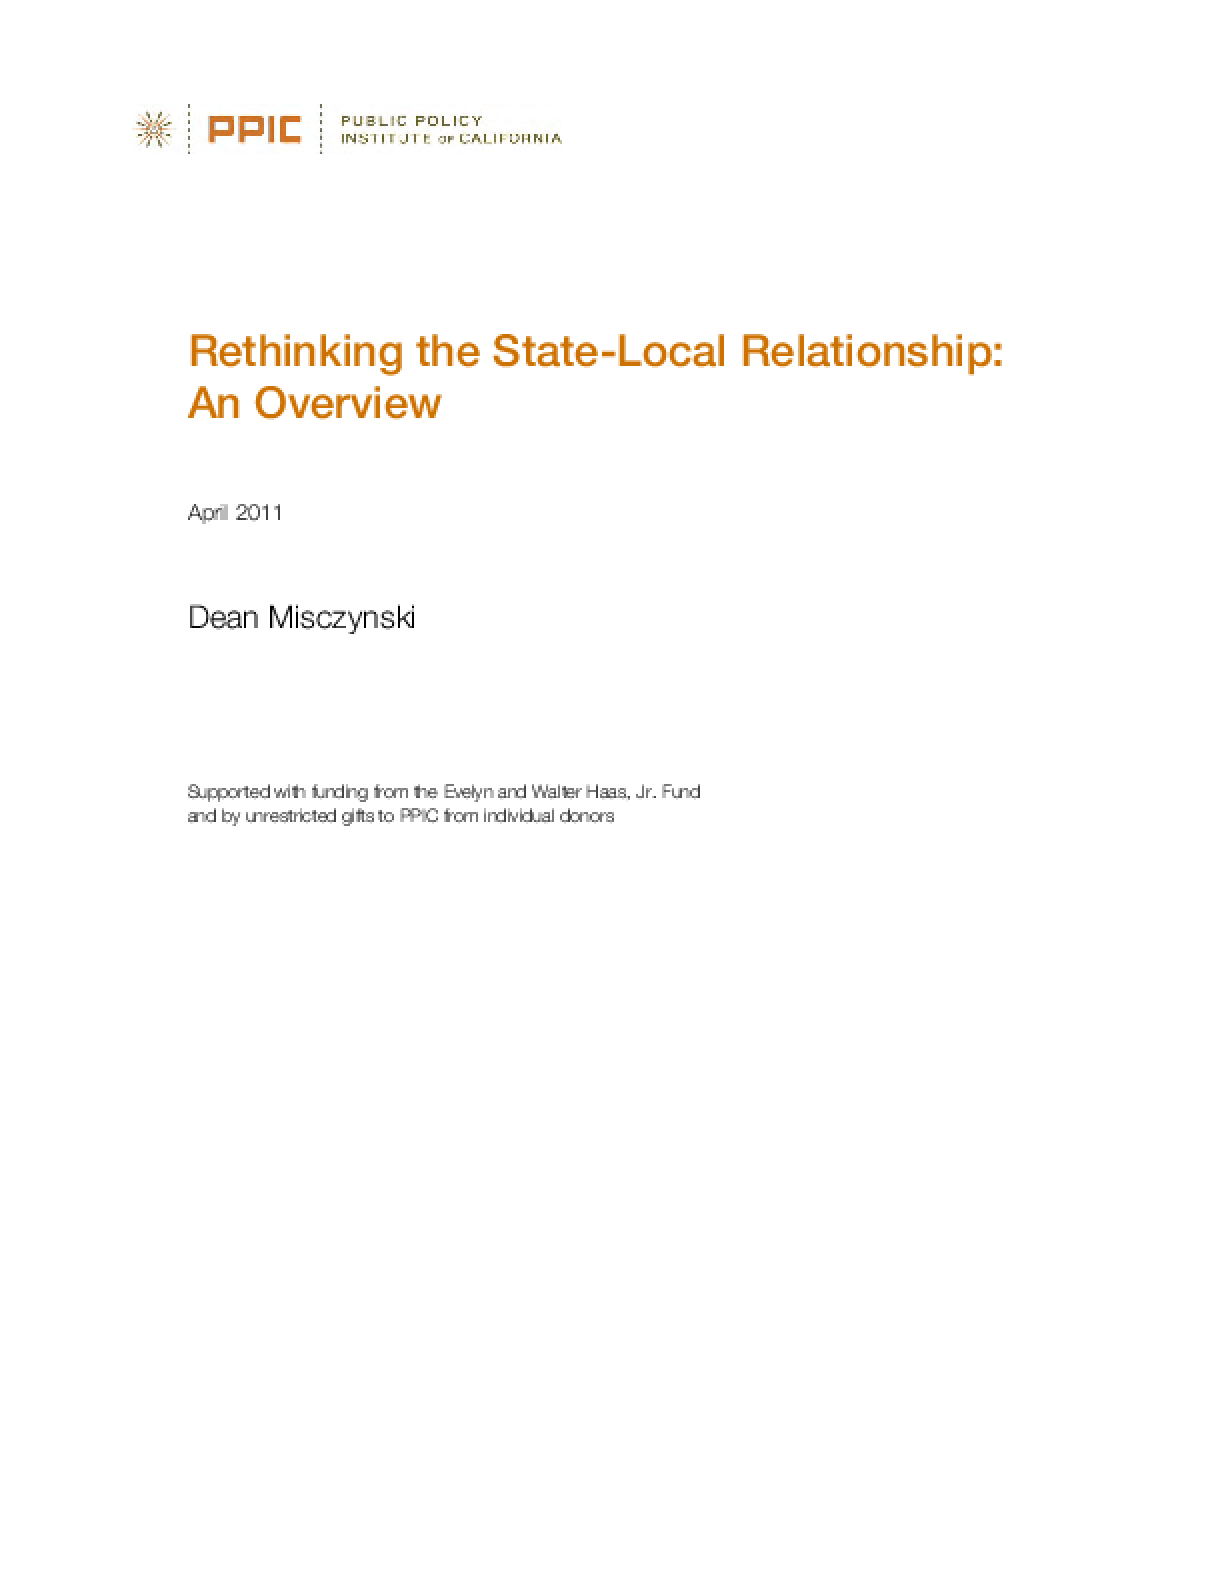 Rethinking the State-Local Relationship: An Overview